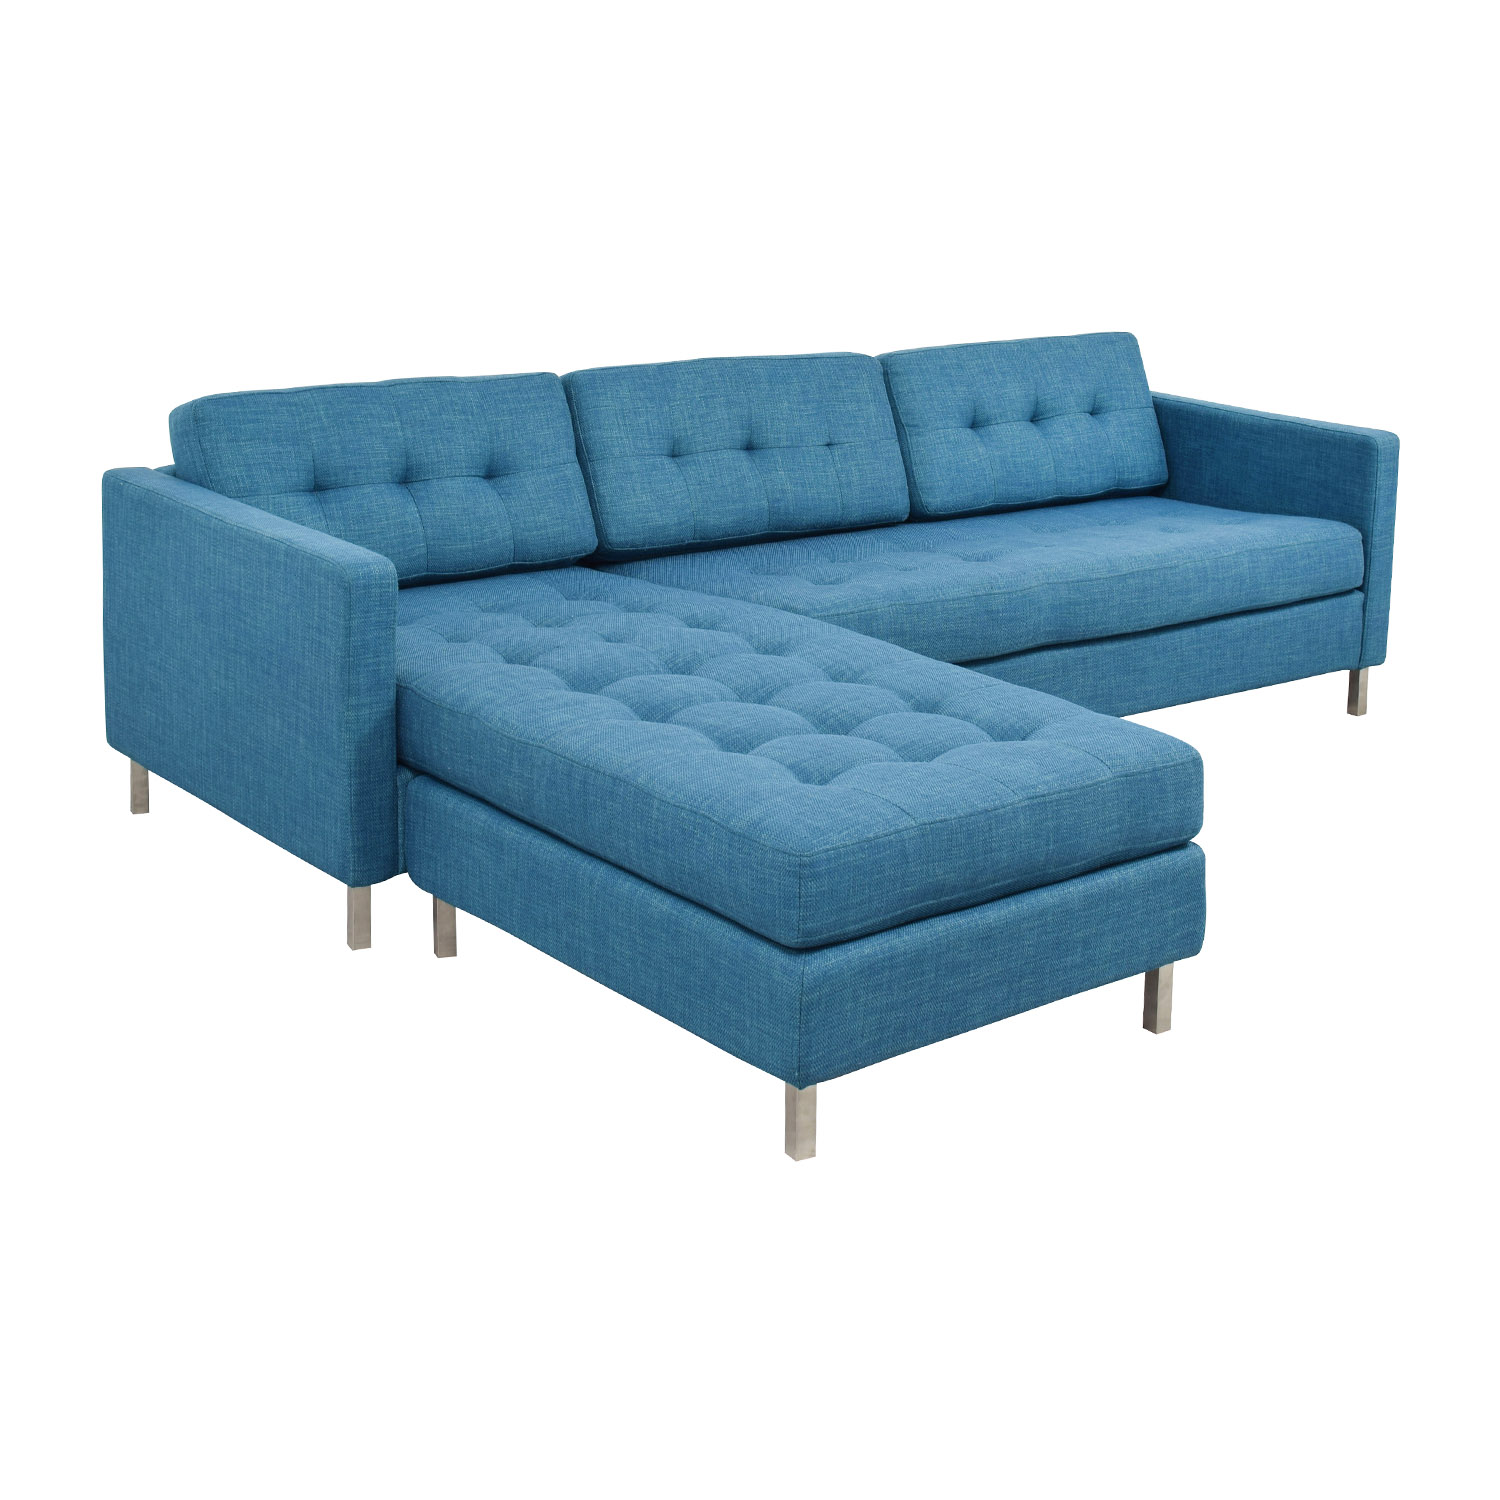 cb2 sectional sofa bed voyager triple reclining 33 off ditto ii peacock sofas